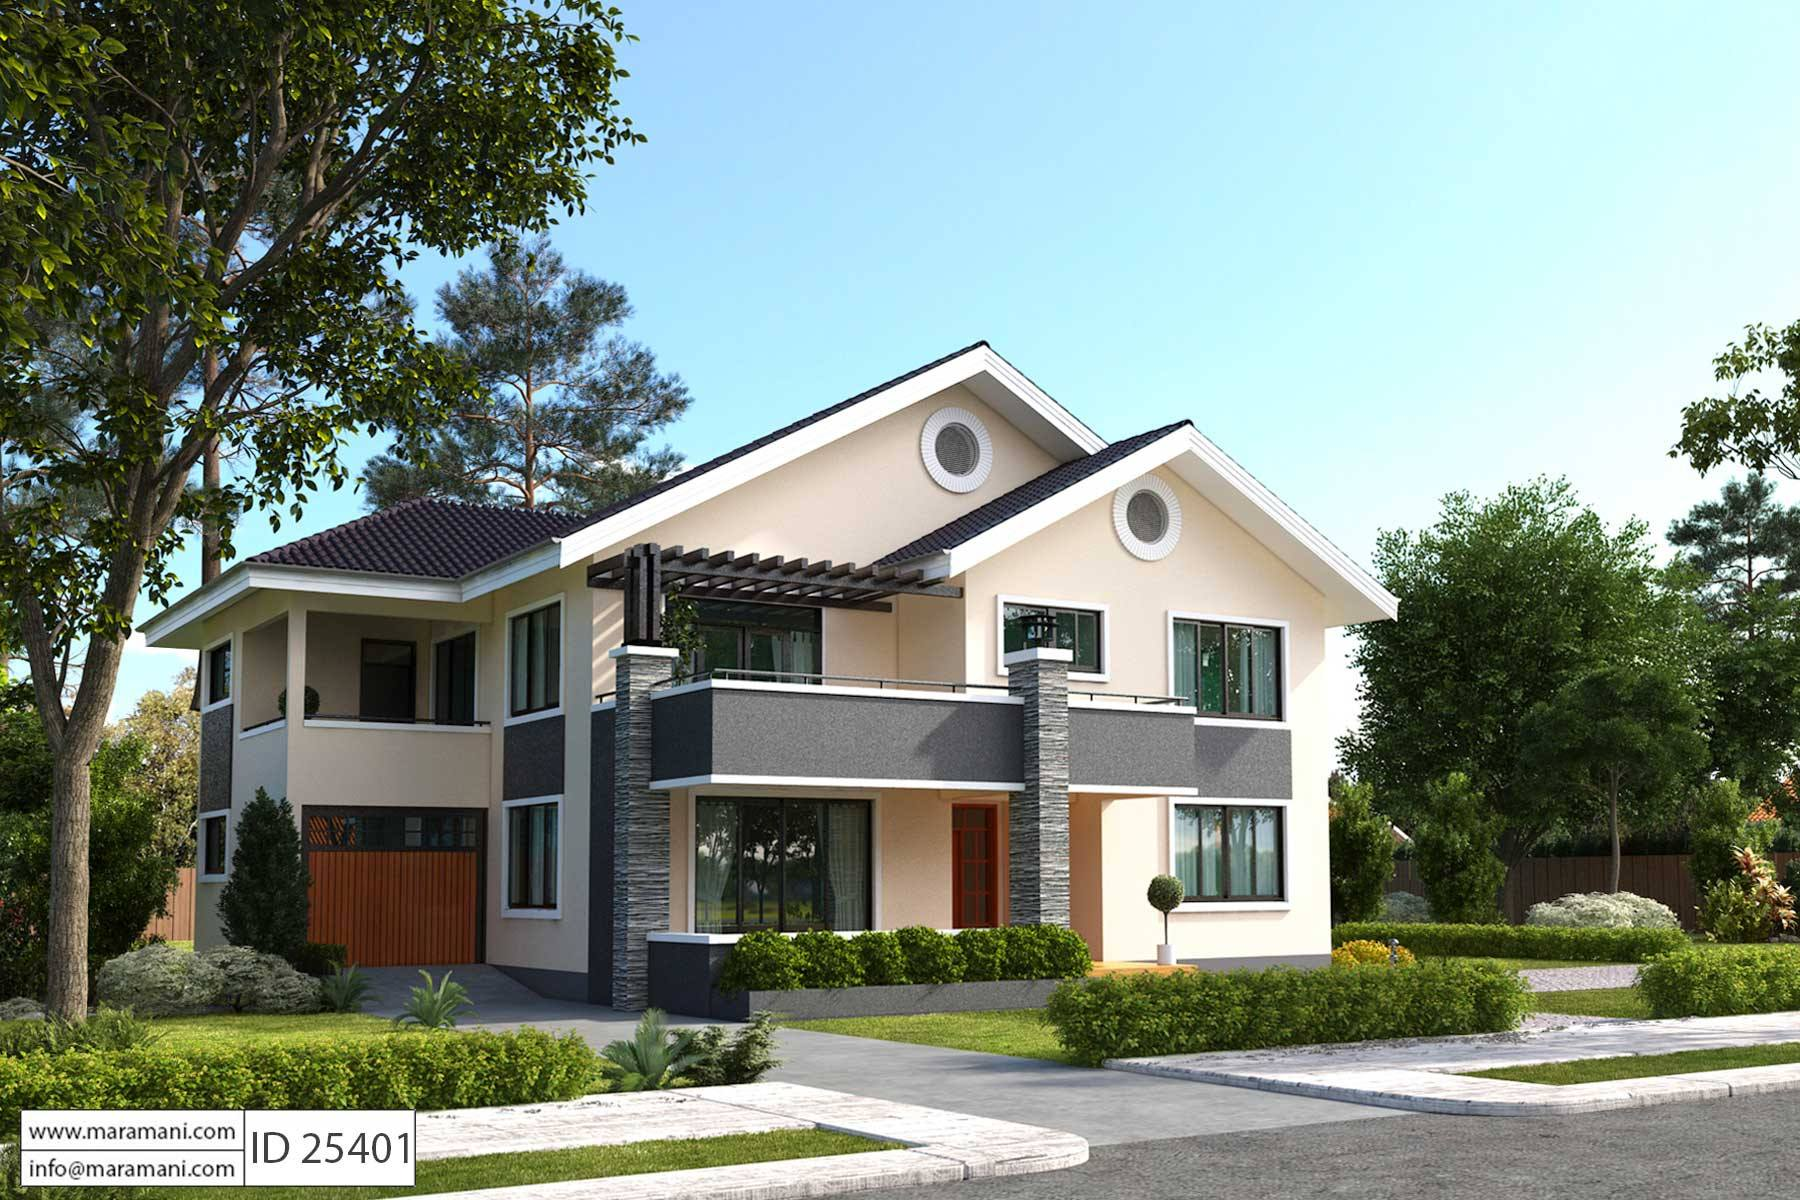 5 Bedroom House Plan ID 25401